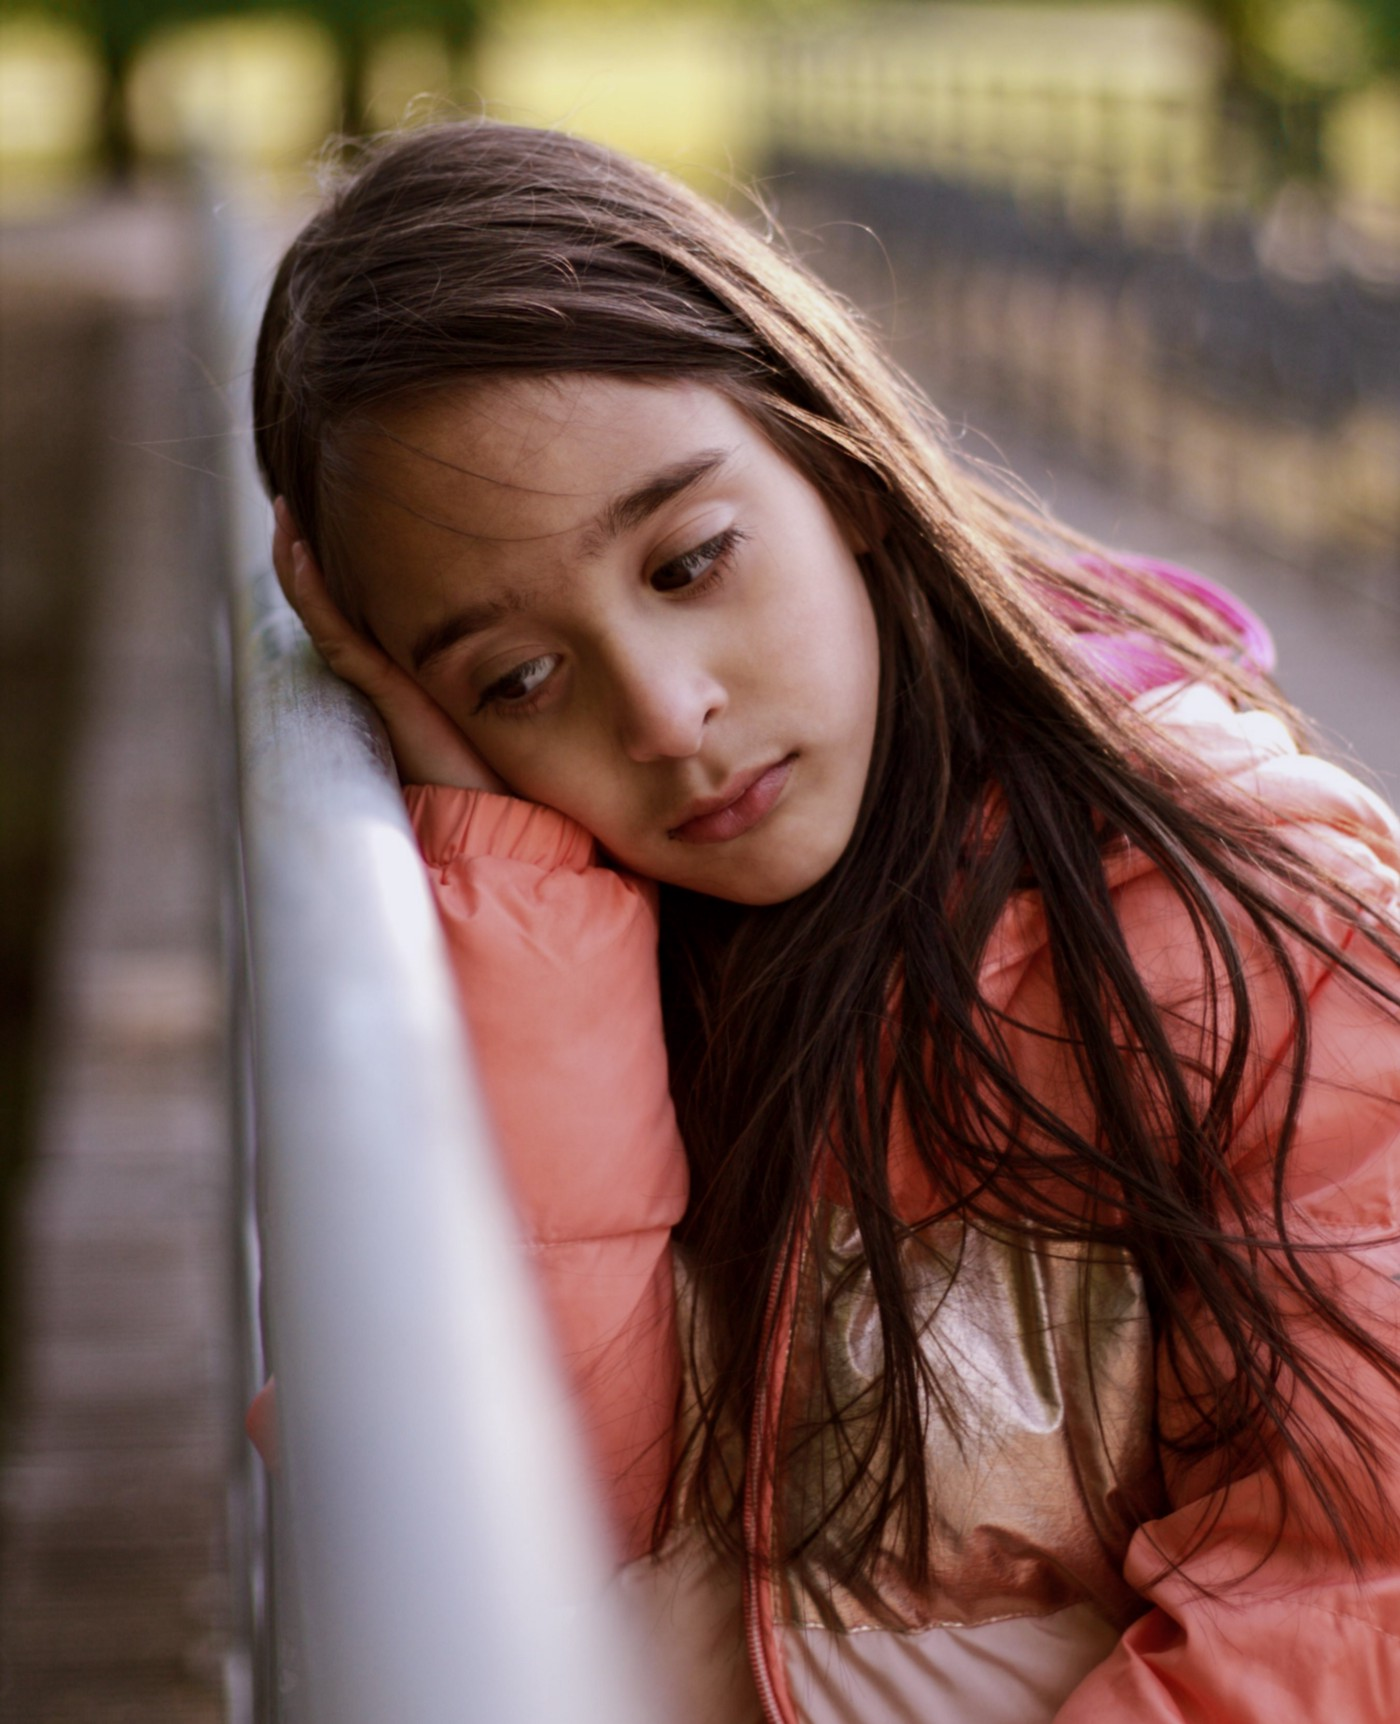 Nine Years Of Age And Too Terrified To Sleep. At such a young age I was terrified I would die if I dared to sleep. A Non-Fiction Story written by Colleen Millsteed.